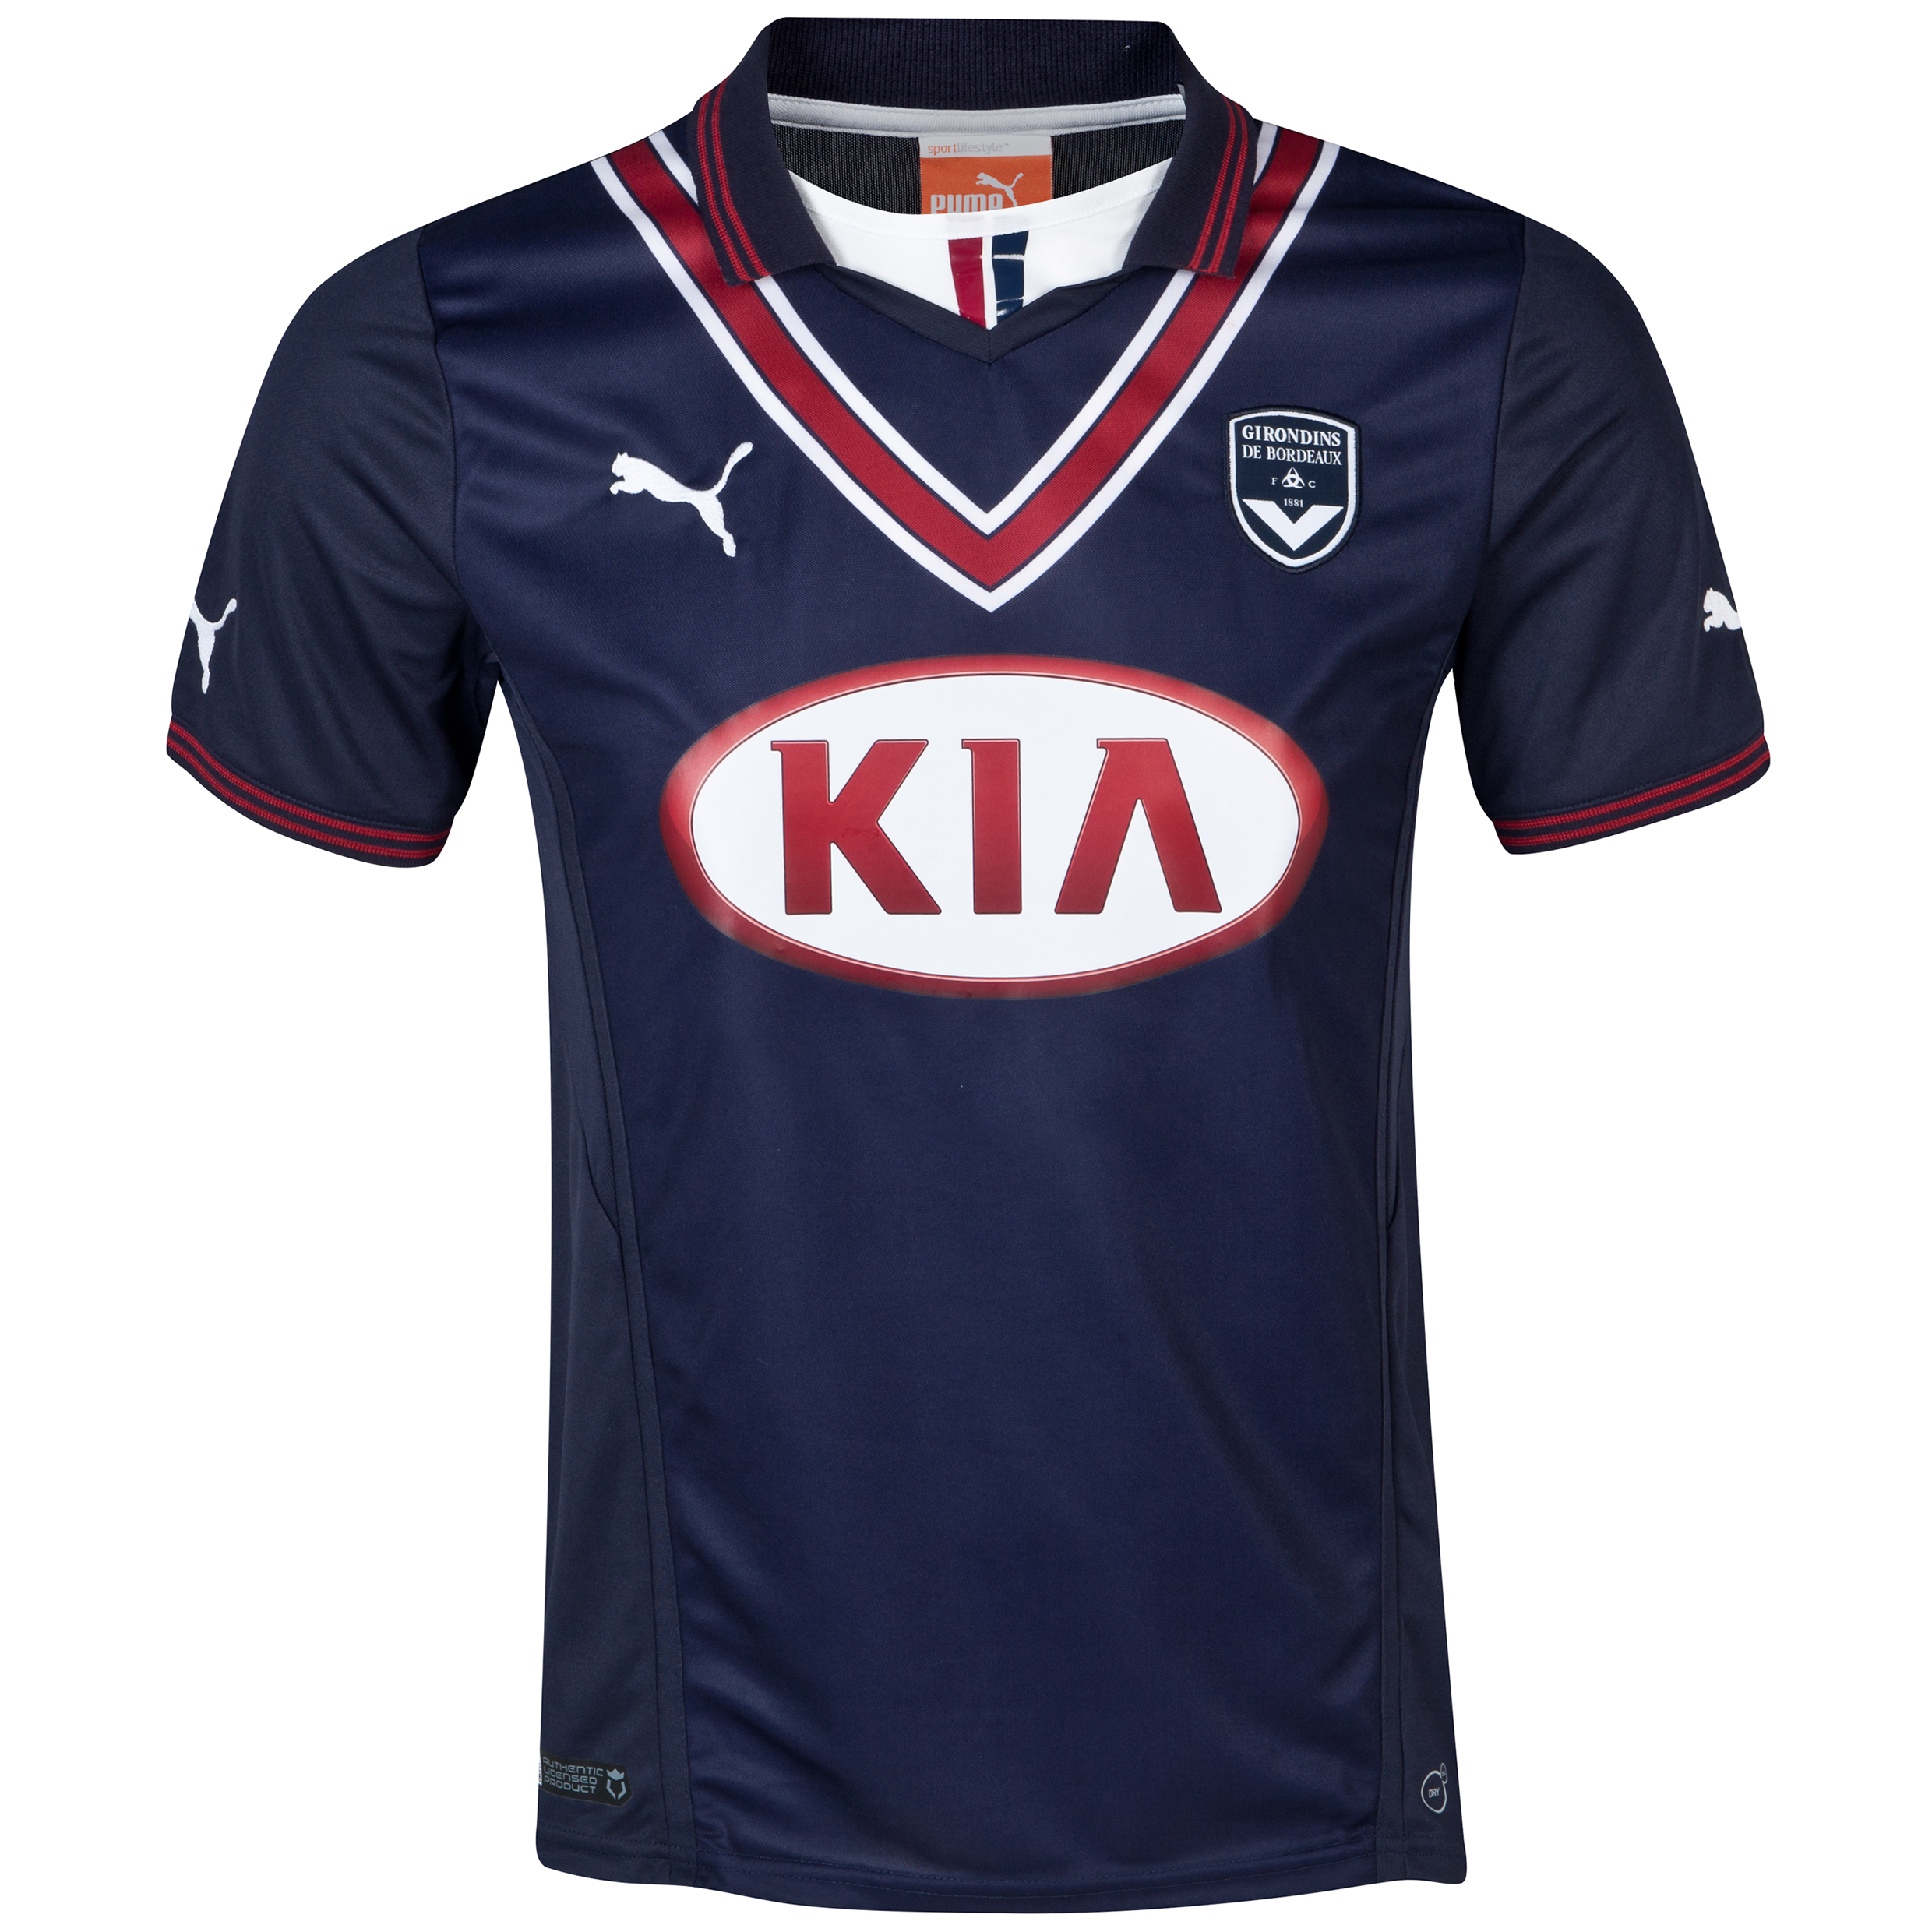 Bordeaux Home Shirt 2013/14